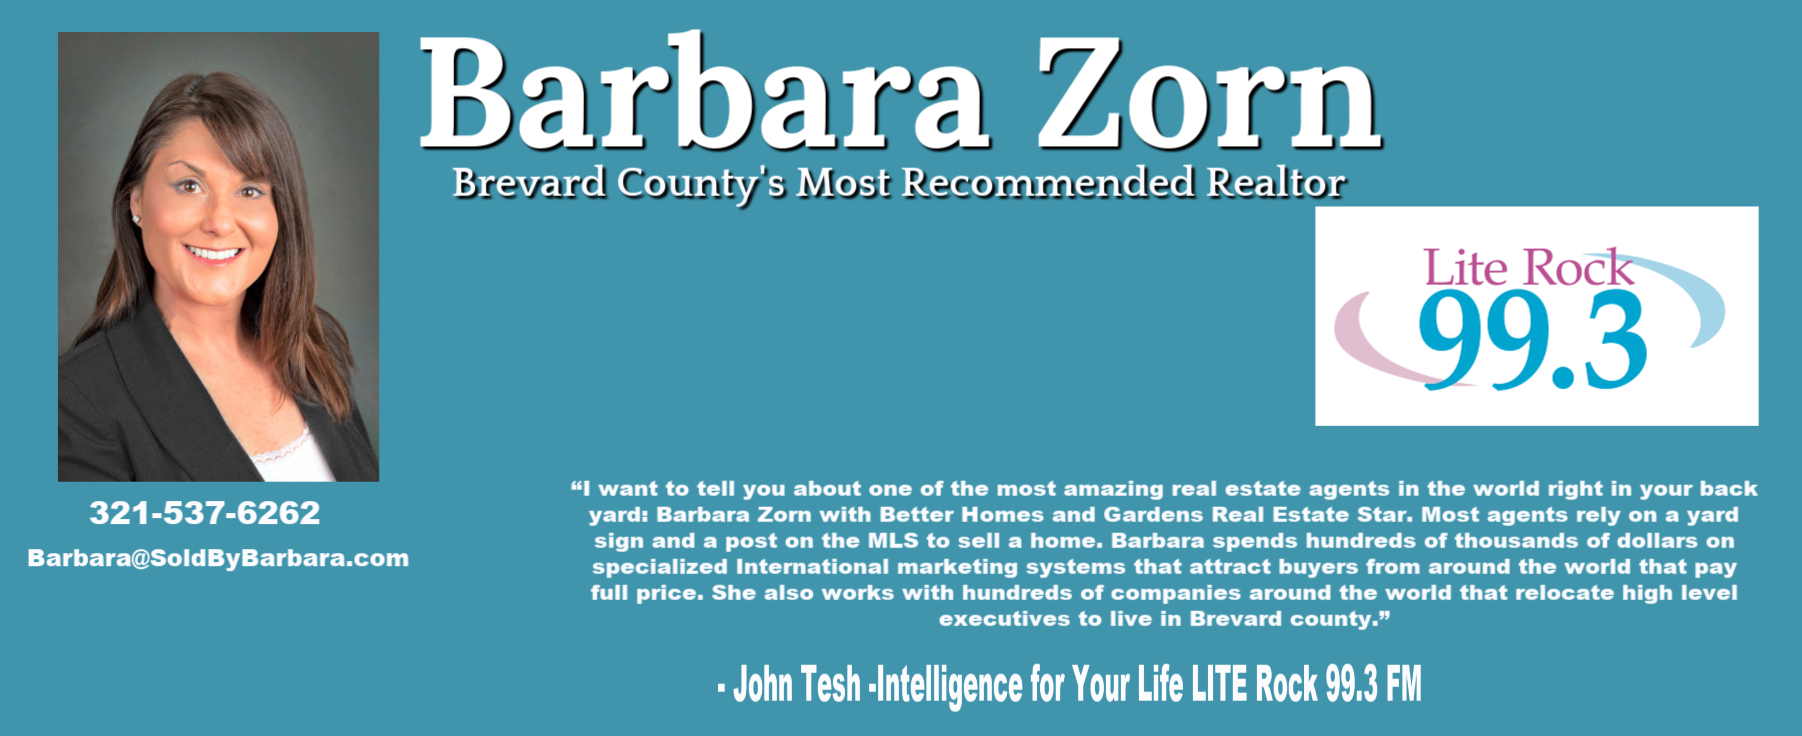 Barbara Zorn - John Tesh's Real Estate Agent